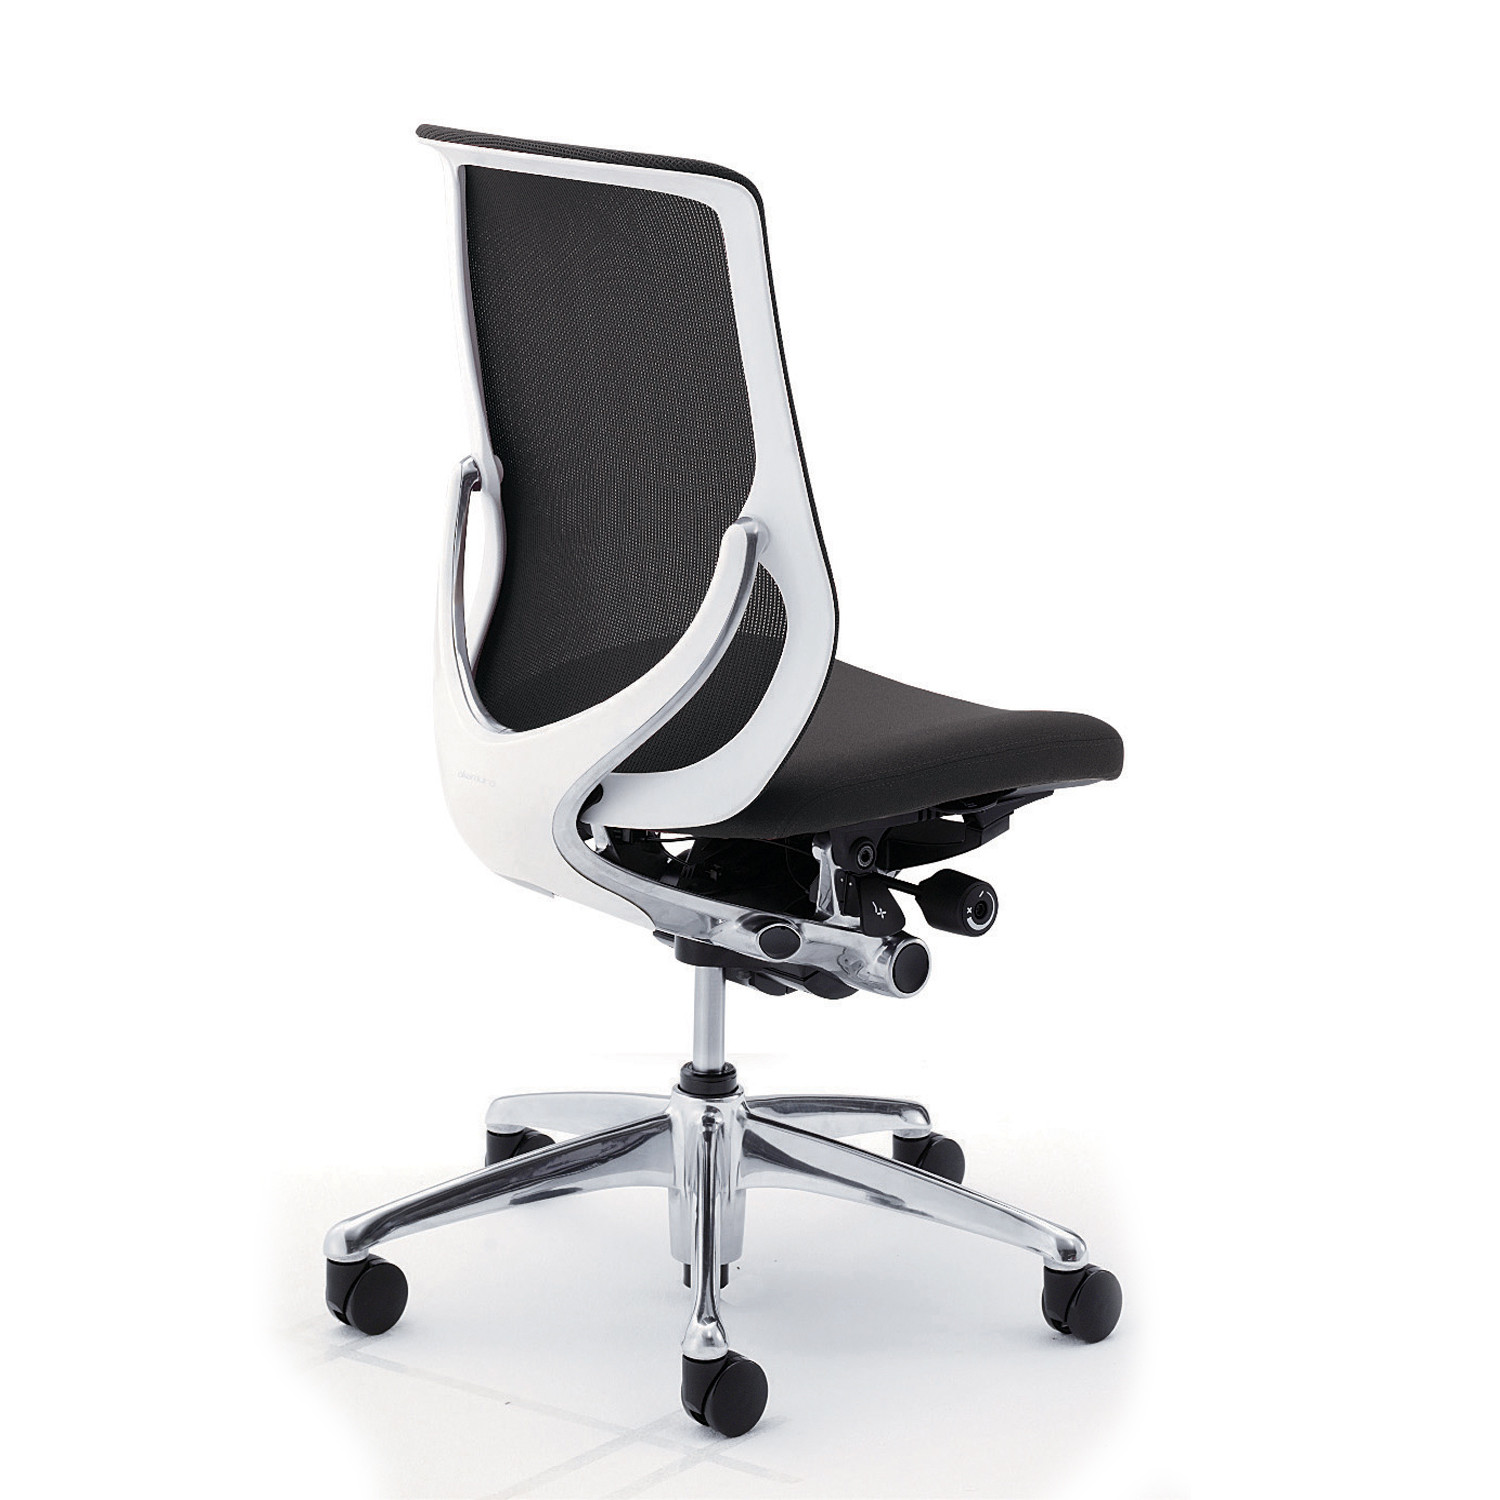 Zephyr Ergonomic Office Chairs by Okamura